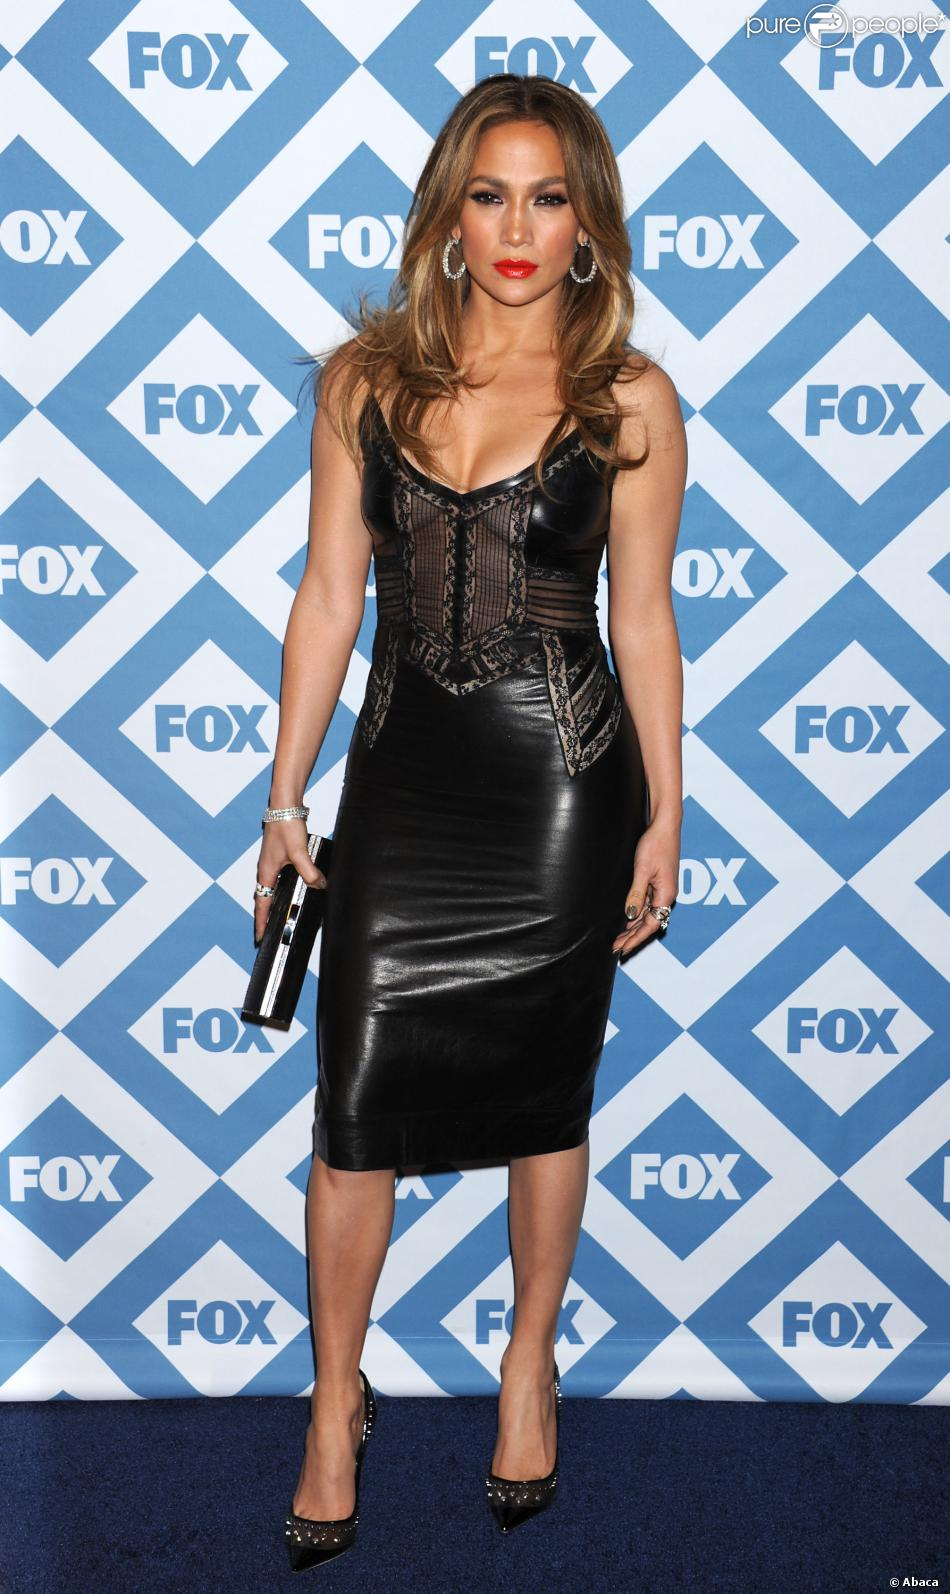 Jennifer Lopez, divine dans une robe en dentelle et cuir Ermanno Scervino, assiste à la soirée du Winter All-Star TCA Press Tour de la chaîne FOX à l'hôtel Langham Huntington. Pasadena, le 13 janvier 2014.